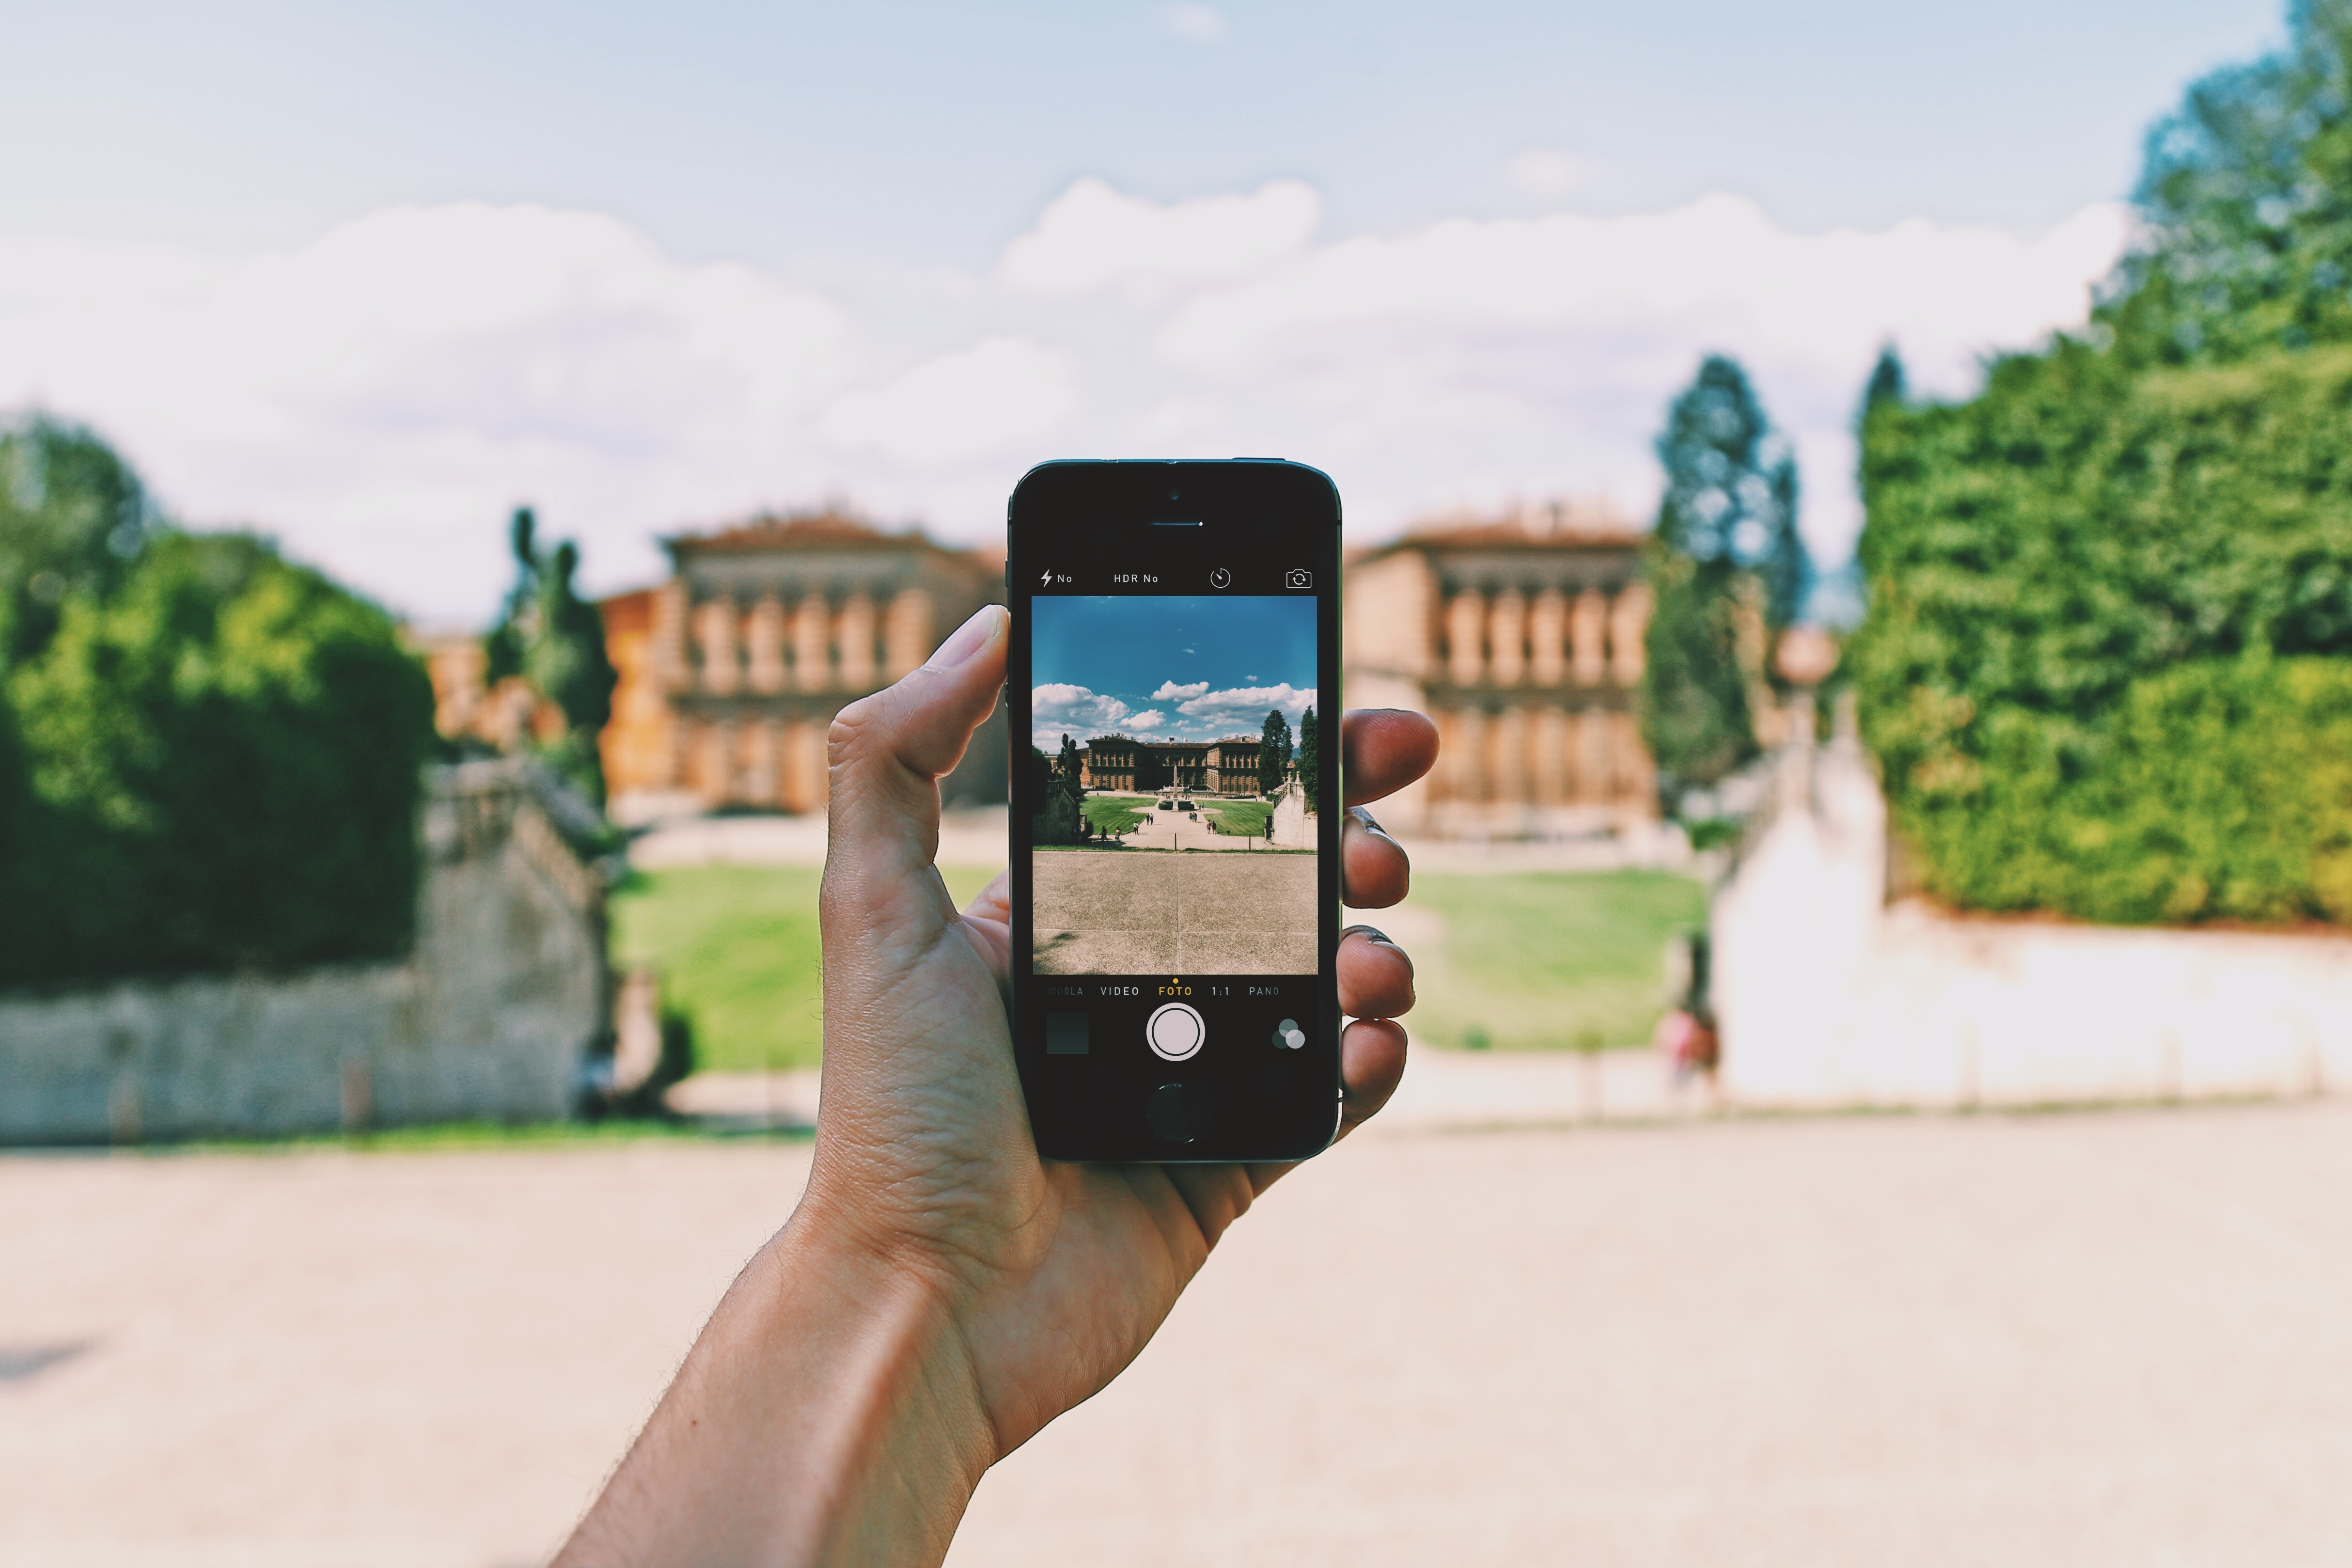 Person Using Space Gray Iphone 5s Taking a Picture of Landmark during Day, Photography, Outdoors, Mobile phone, Relaxation, HQ Photo